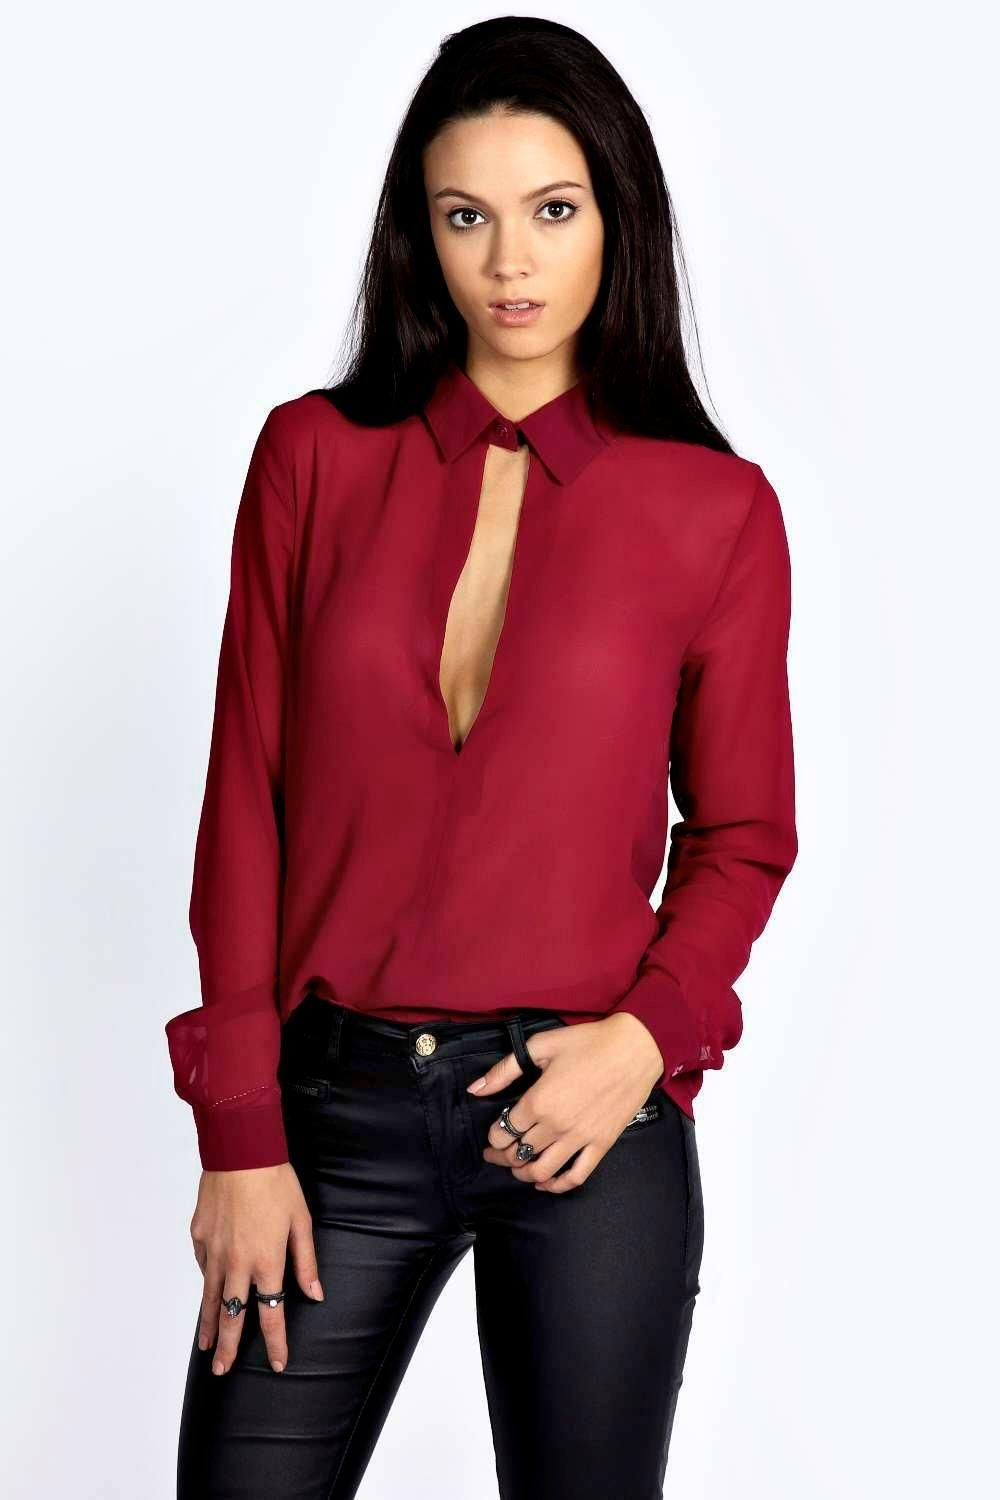 Lace bodysuit boohoo  Rosella Collared Deep Plunge Long Sleeve Blouse  Things to wear